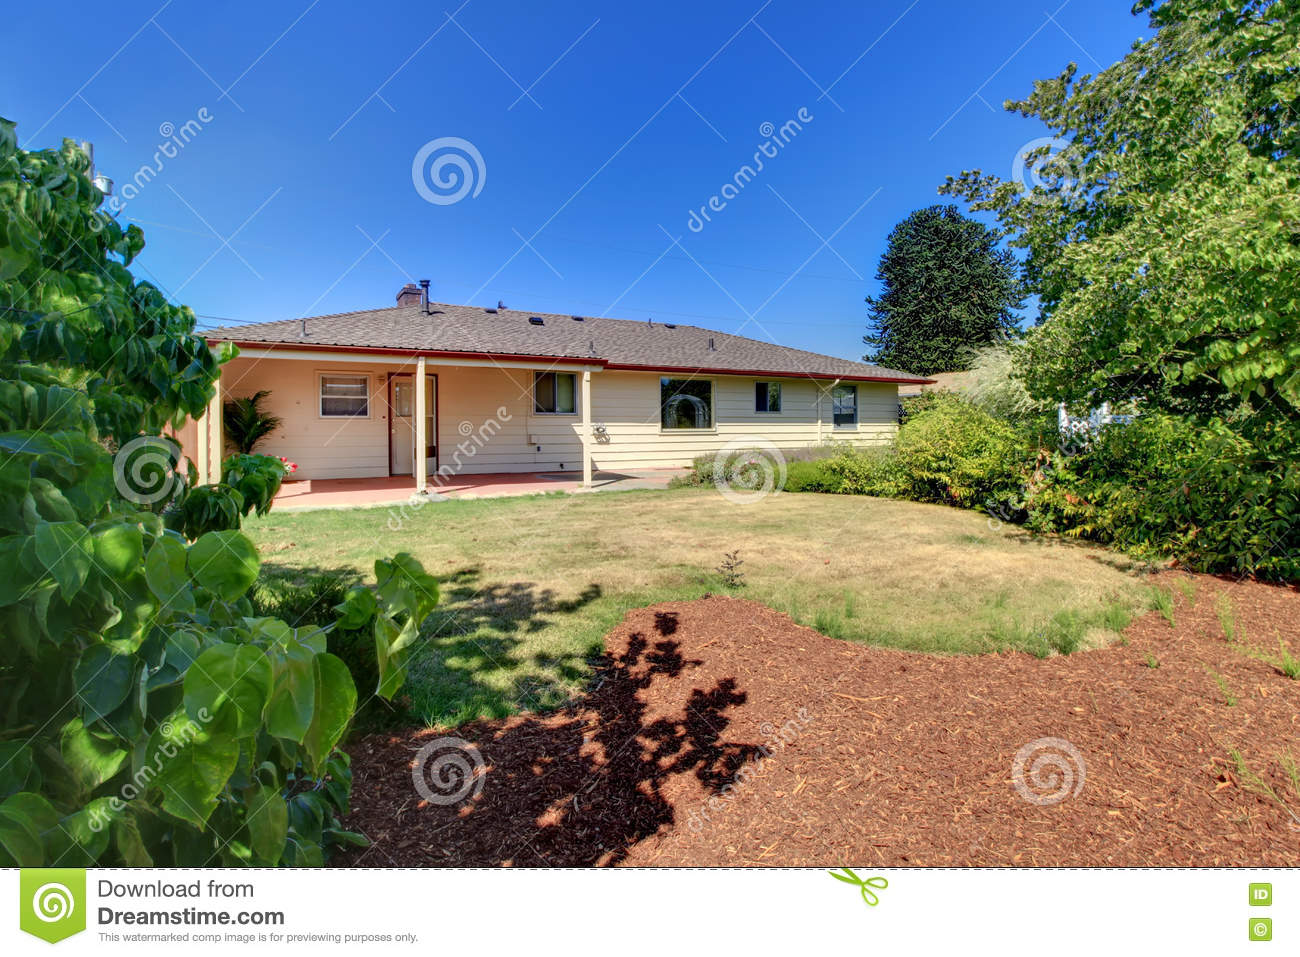 Rambler exterior old simple american house stock photo for Simple american house